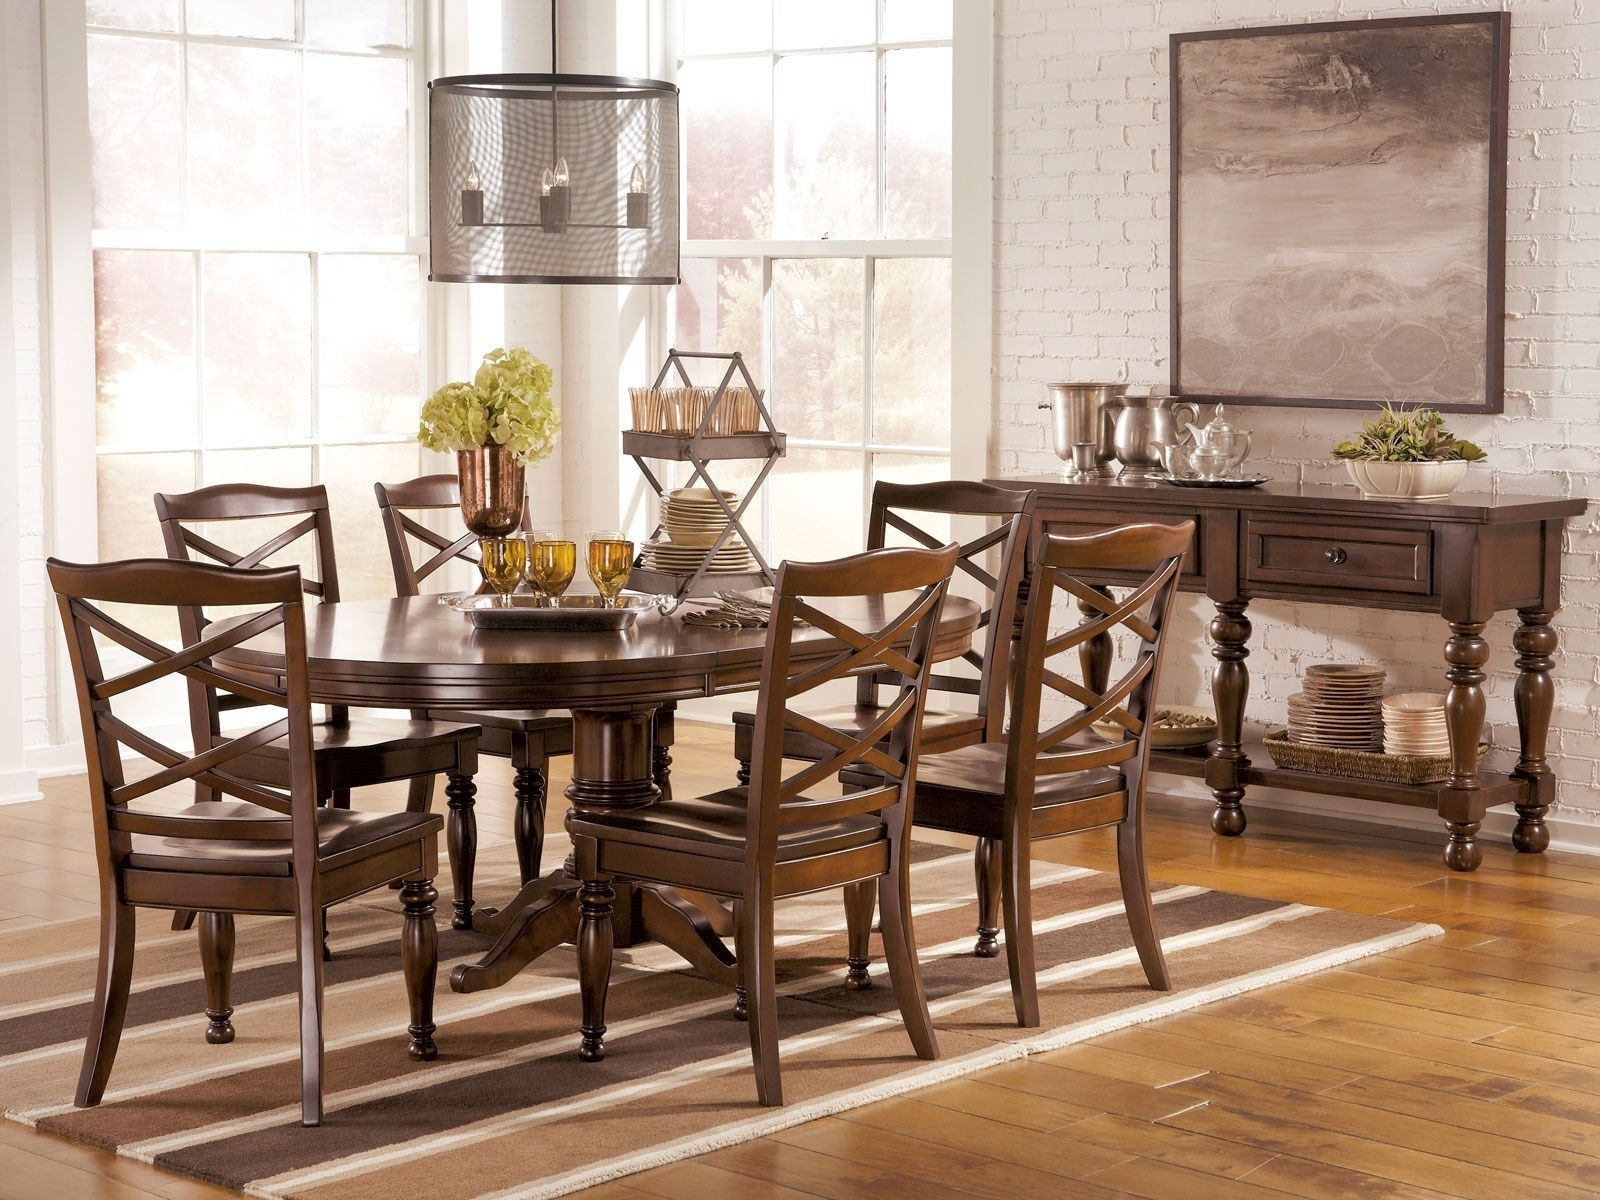 Oval dining table set for 6 & Oval Dining Table Set For 6 - Foter